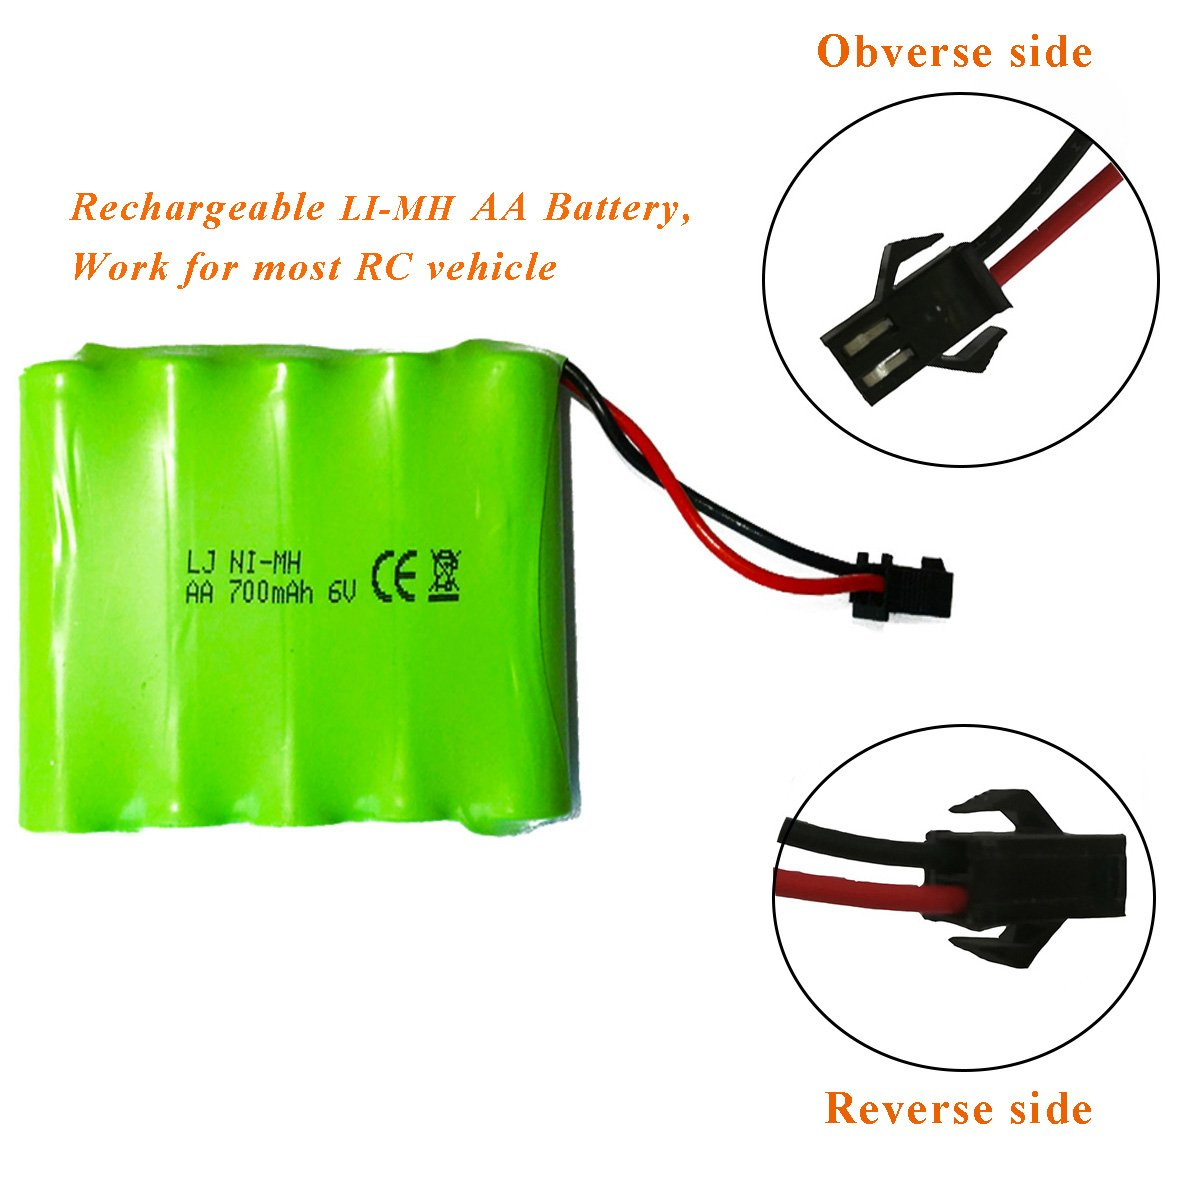 AA Rechargeable Battery Pack 6V 700mAh Ni-Mh Batteries SM 2P Plug Connector, High Capacity Battery Pack Universal Spare Battery for Electric Toys Remote Control Rc Cars Vehicles